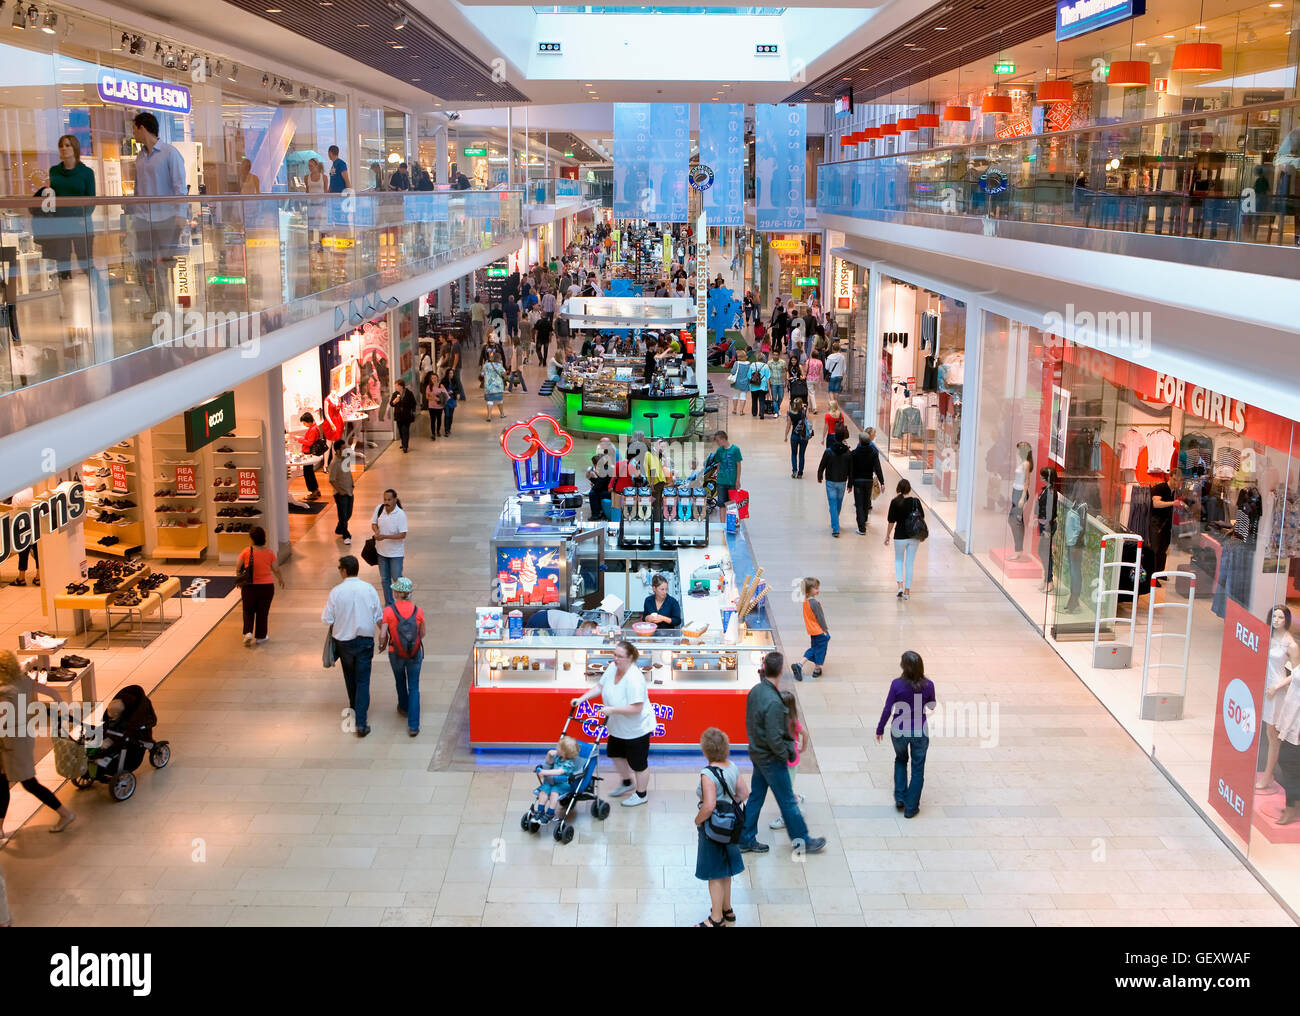 Shopping Mall in Stockholm - Stock Image